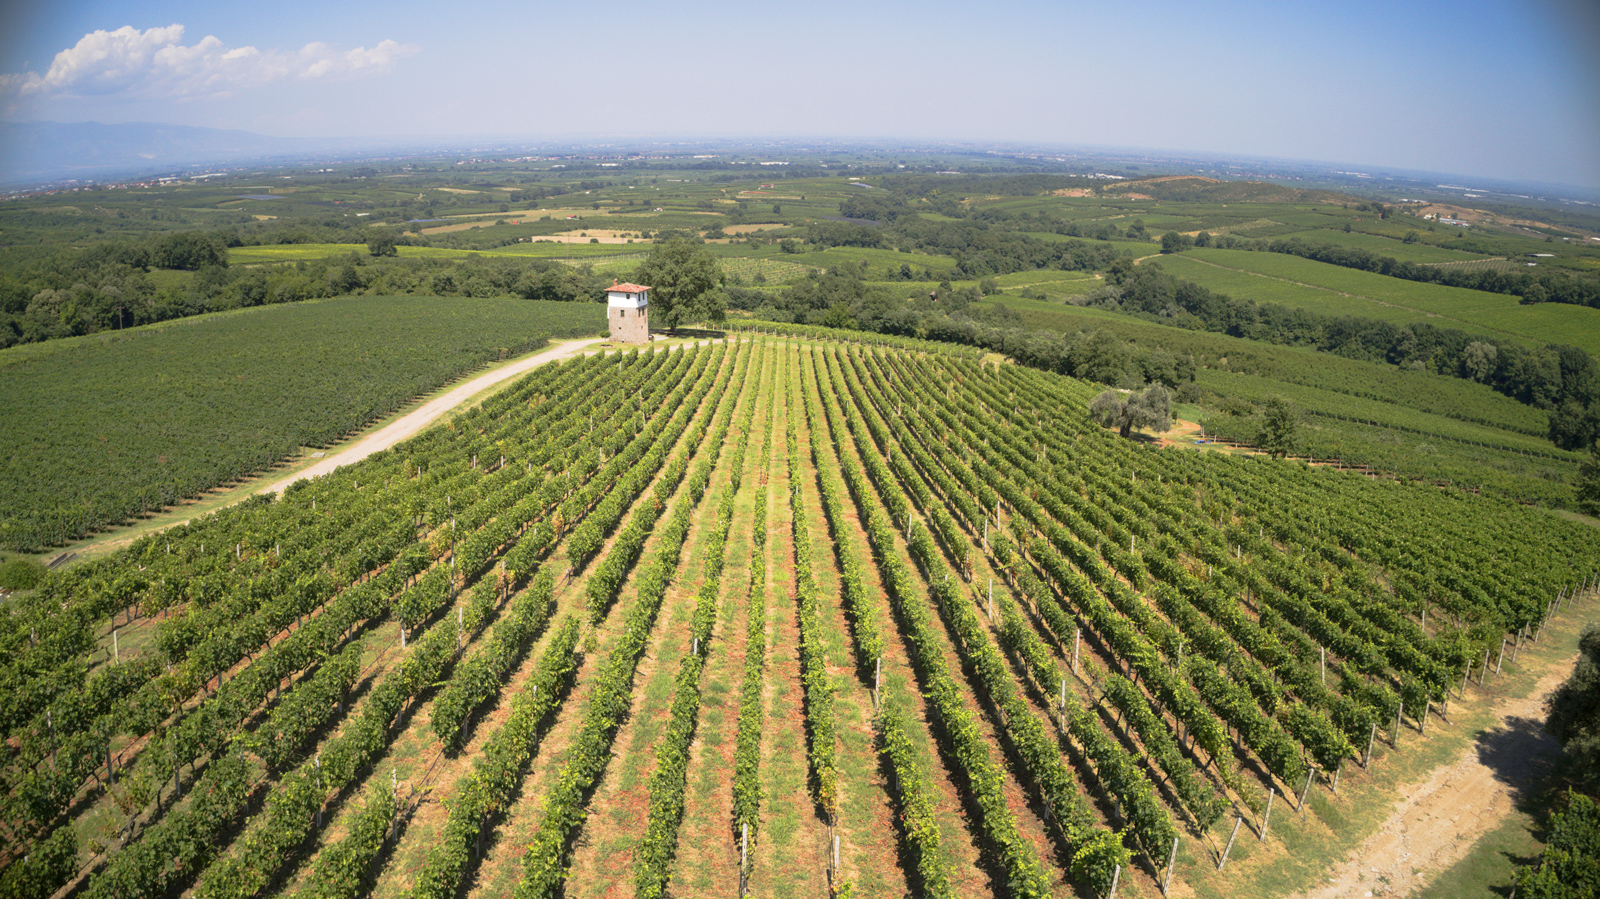 Kir Yanni Winery